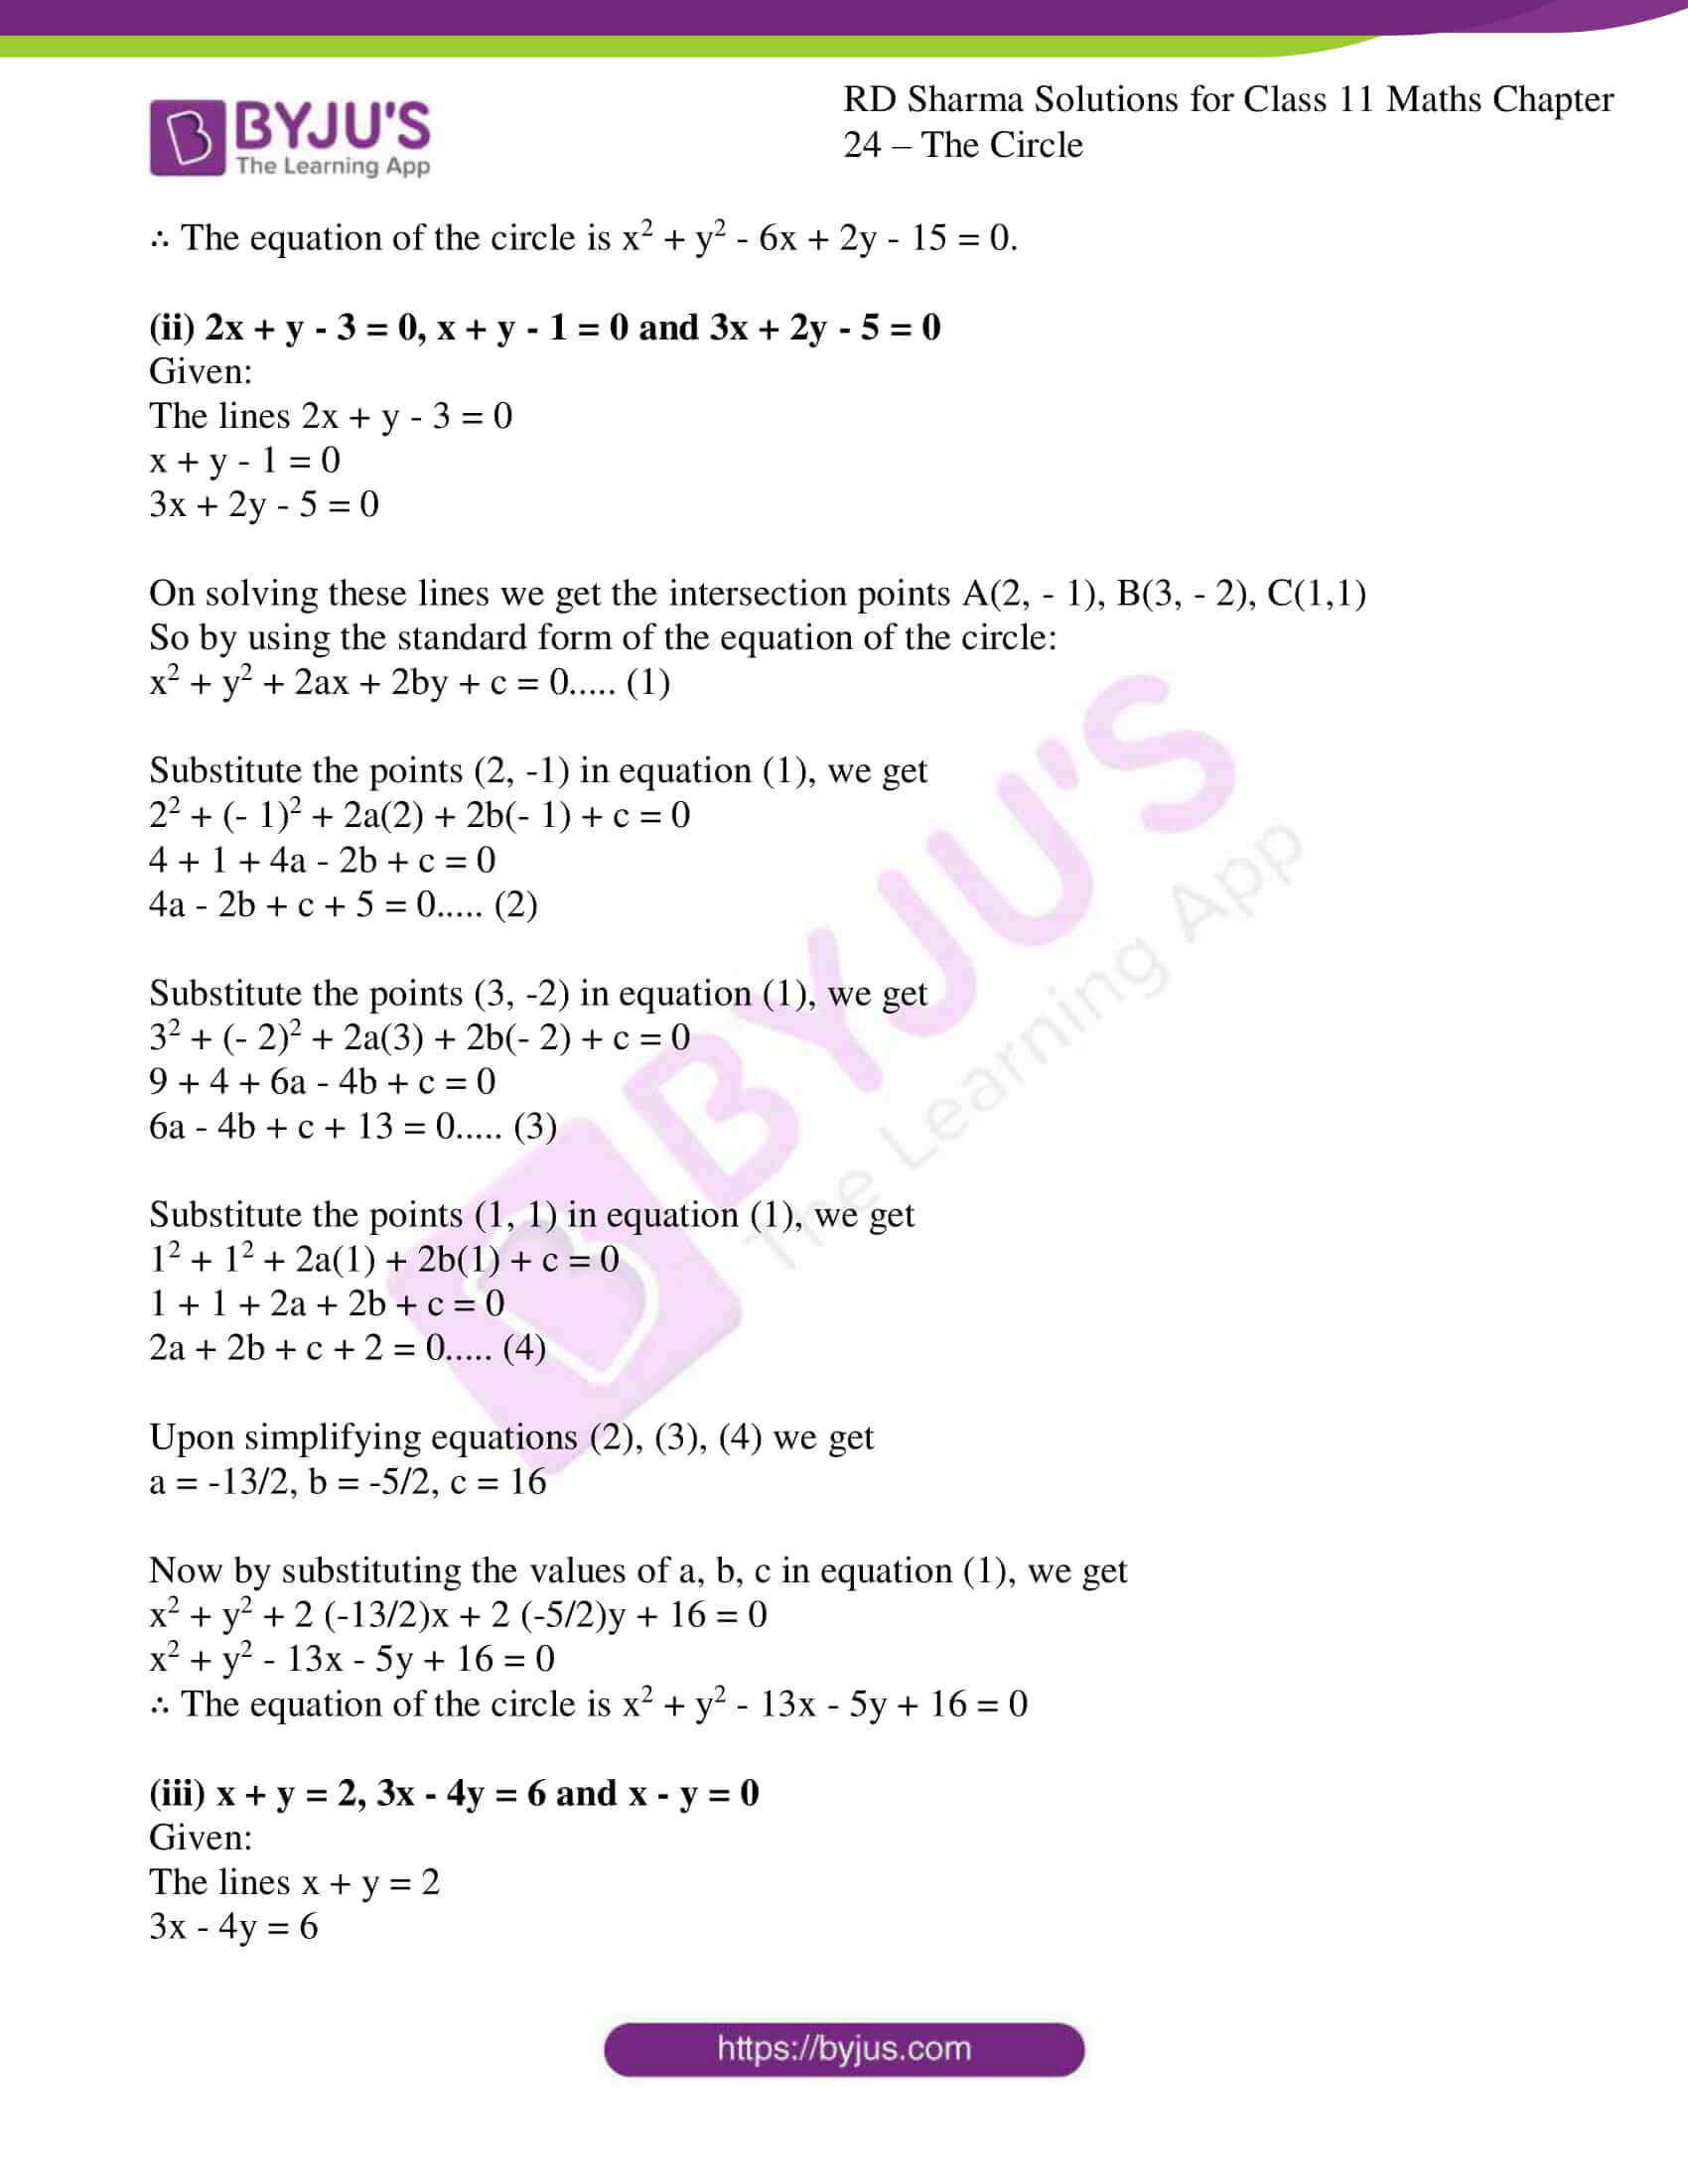 rd sharma class 11 maths ch 24 the circle ex 2 11